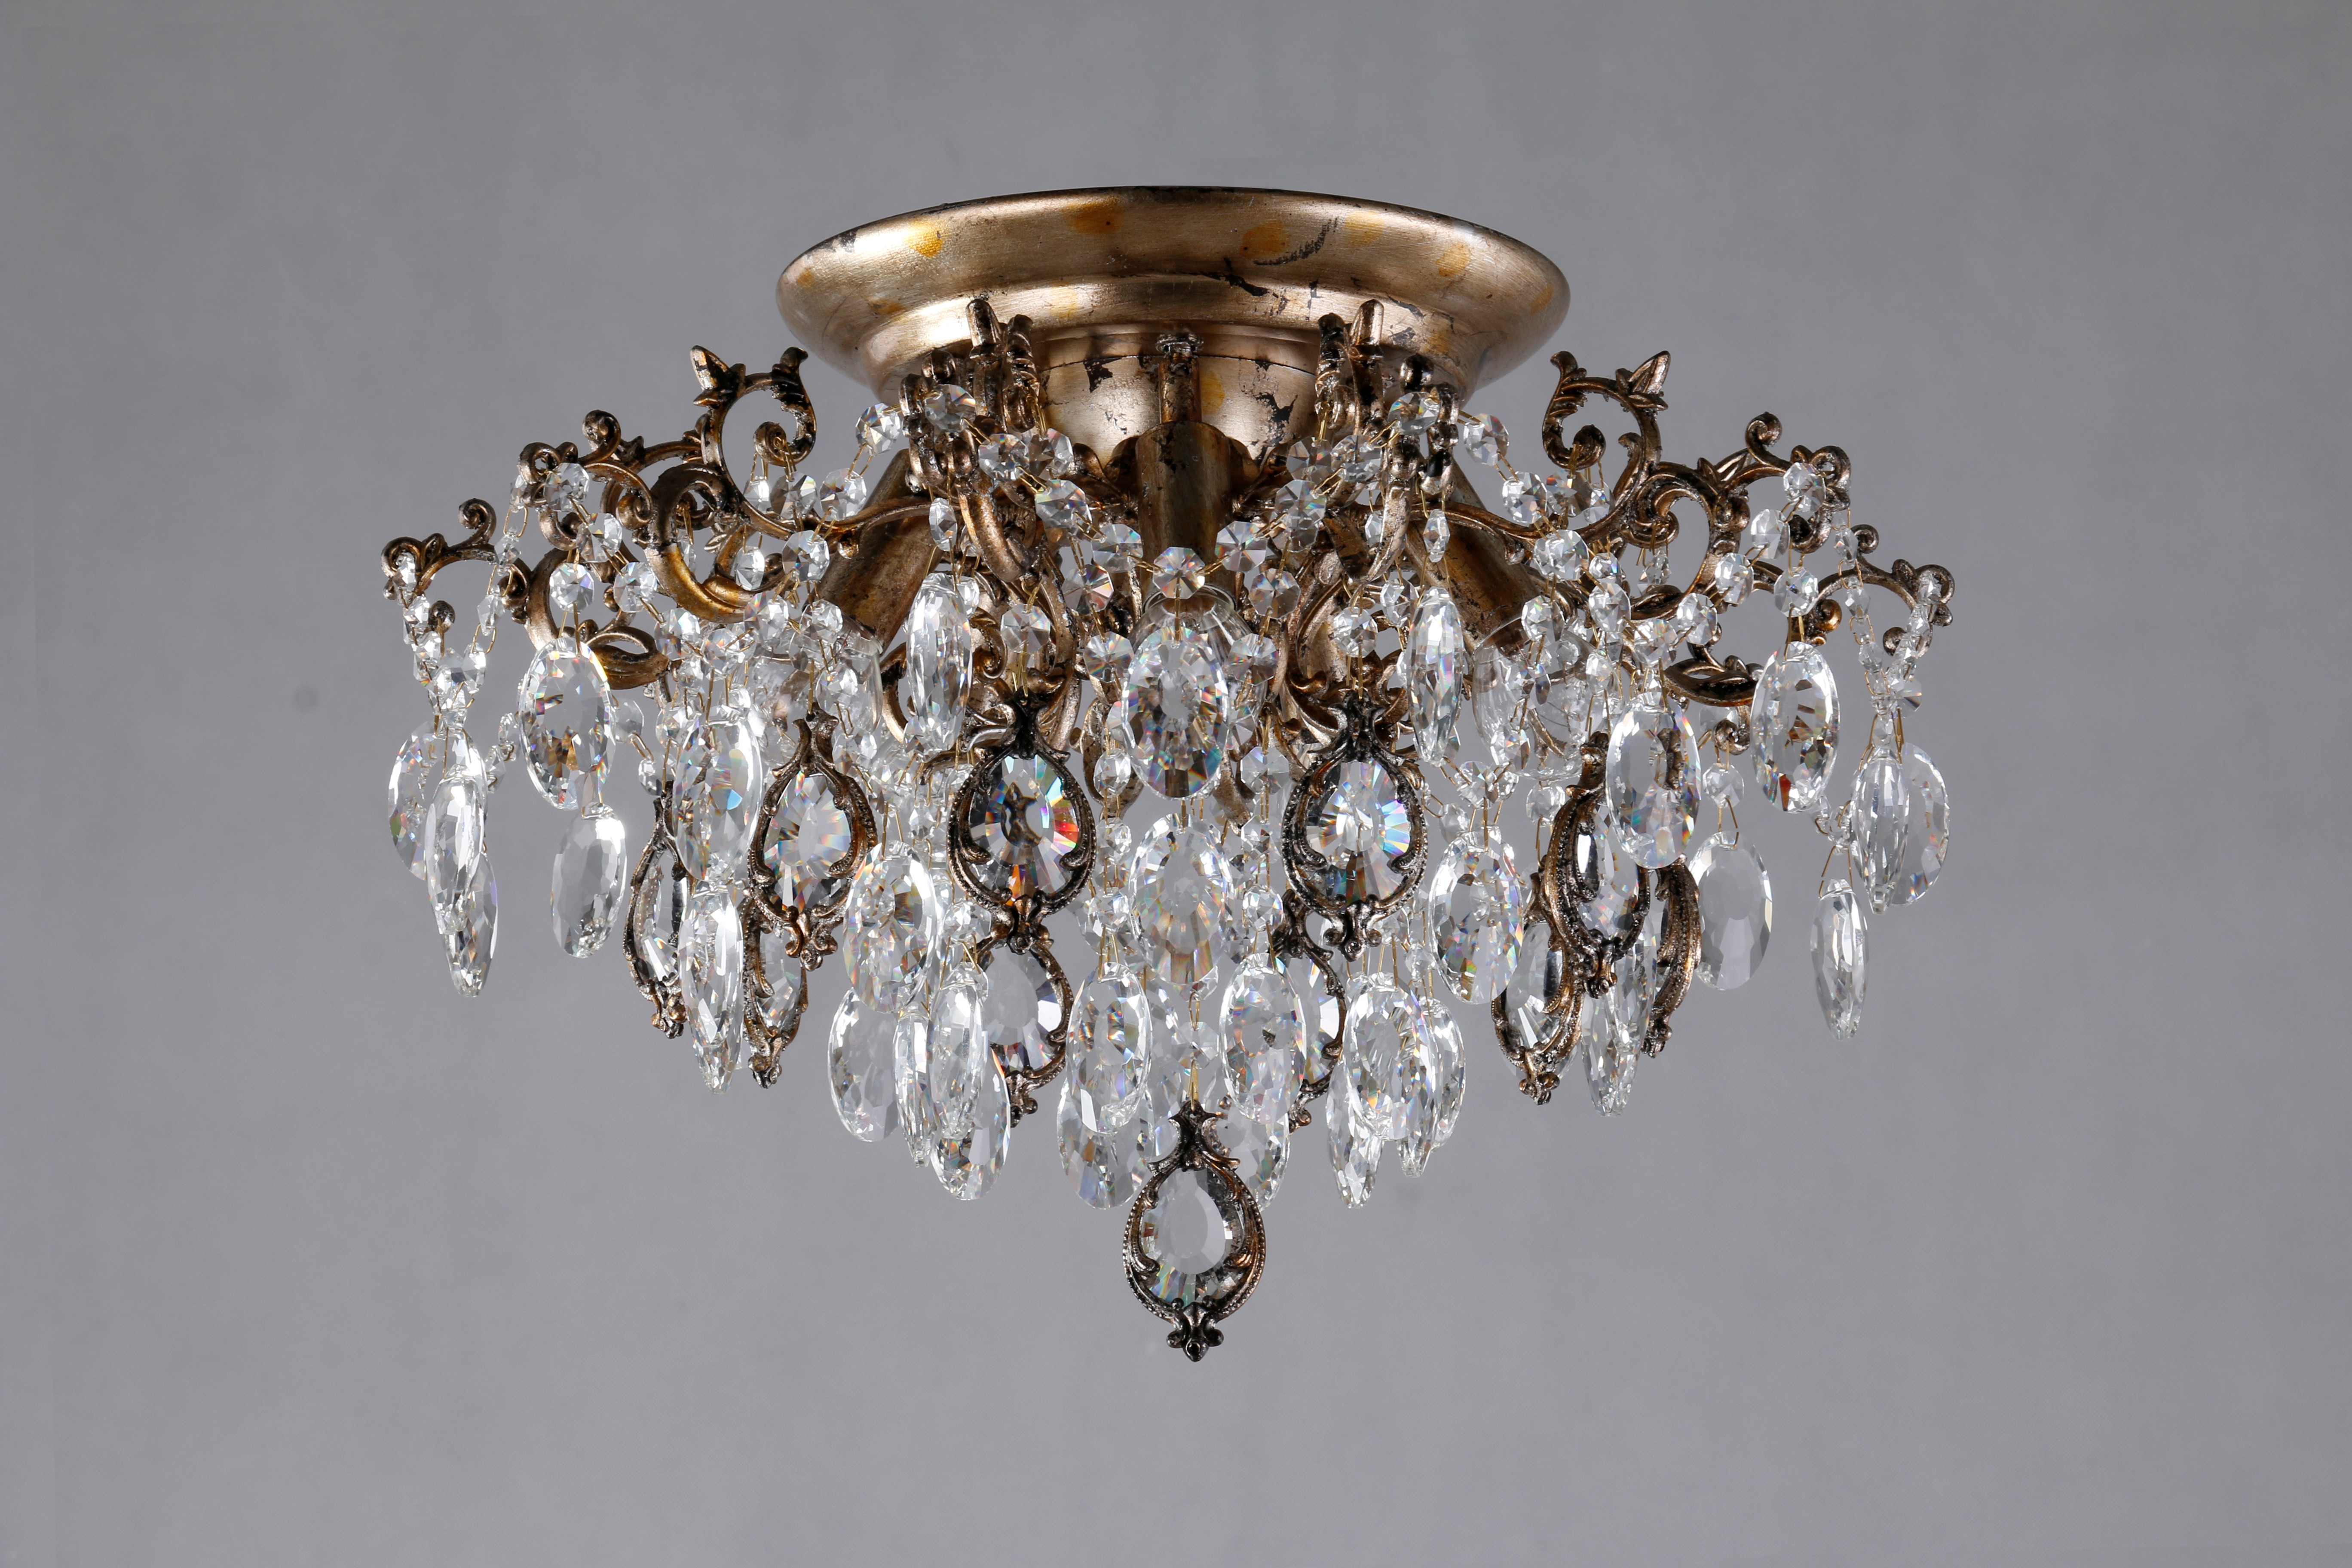 chrome hedgehog ch products crystal chandelier impex shack ceiling light